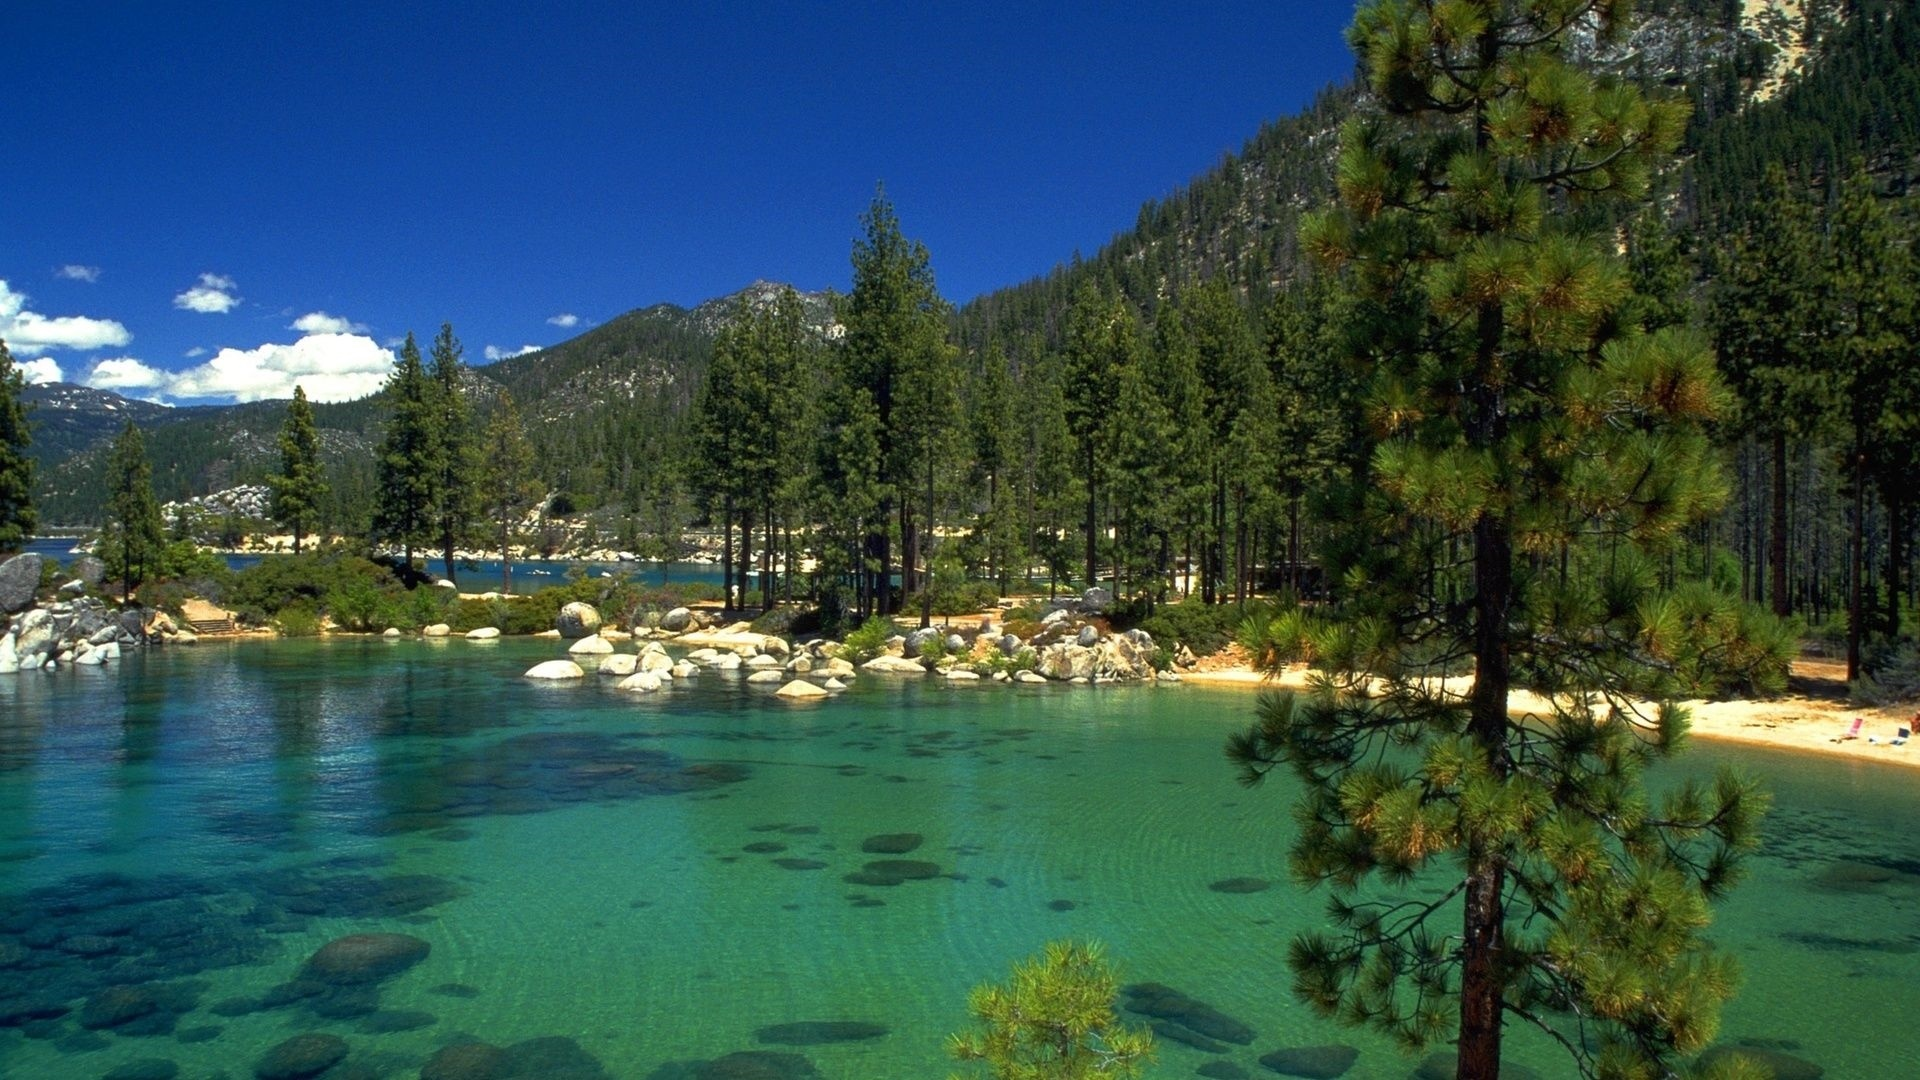 Lake Tahoe wallpaper for desktop